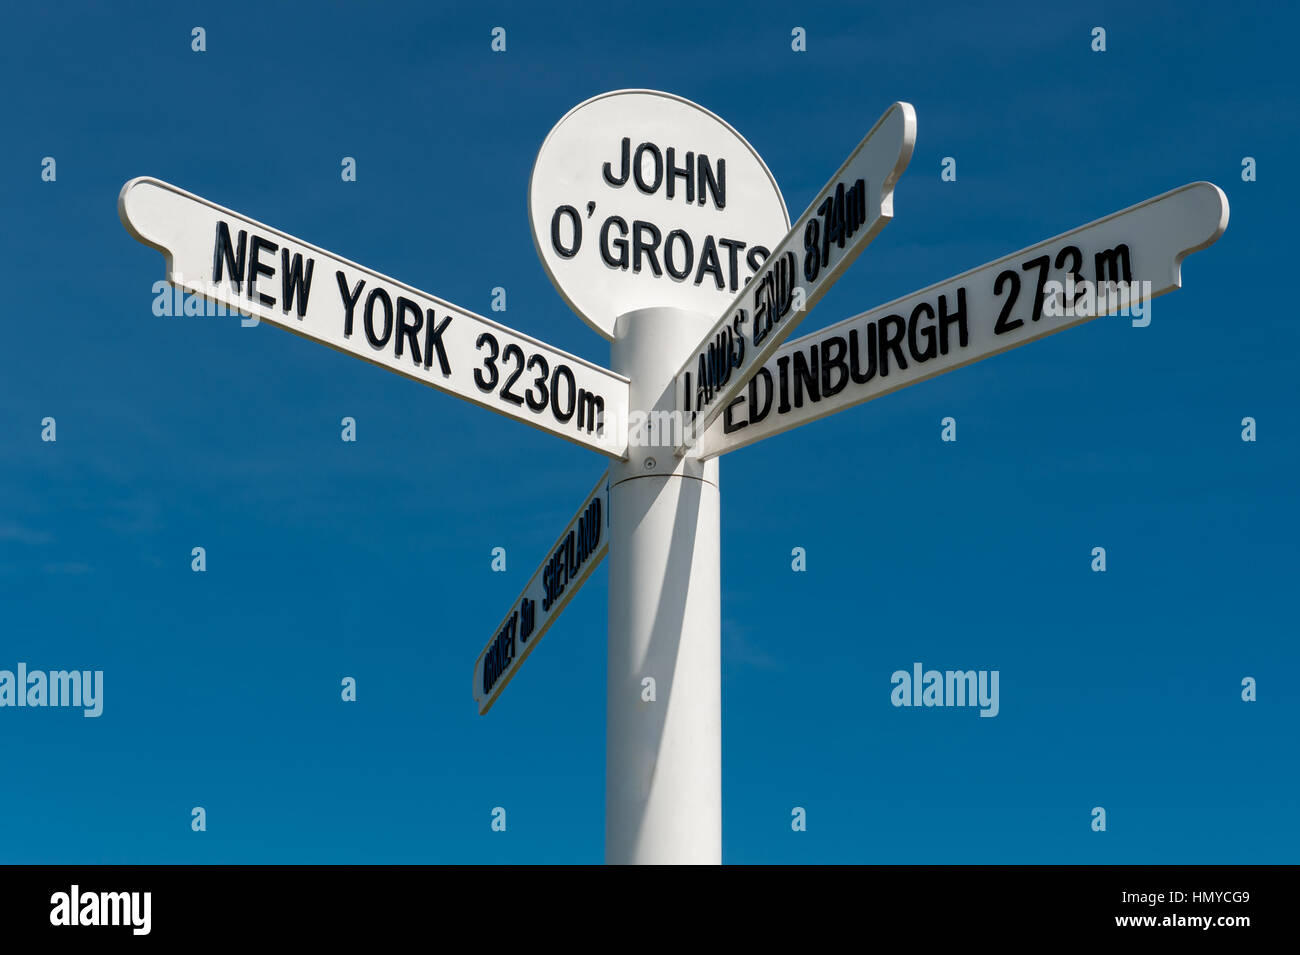 The milepost sign at John O Groats near Caithness in Scotland on the most north eastern tip of the UK. - Stock Image